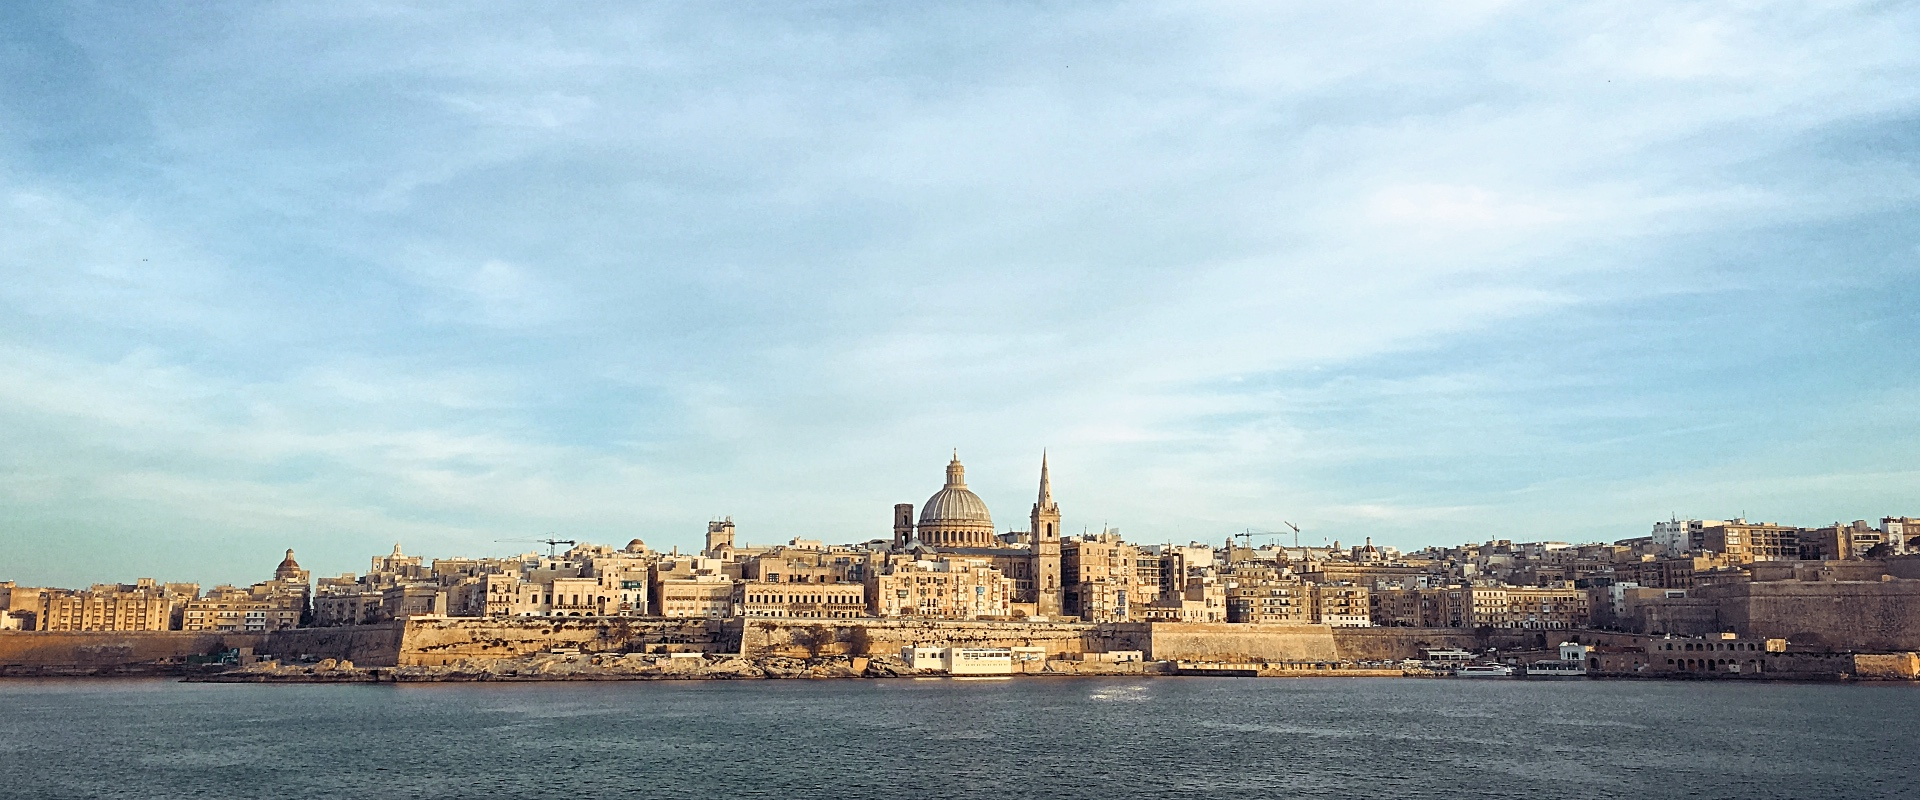 Valletta the capital of Malta, sunset on a spring day